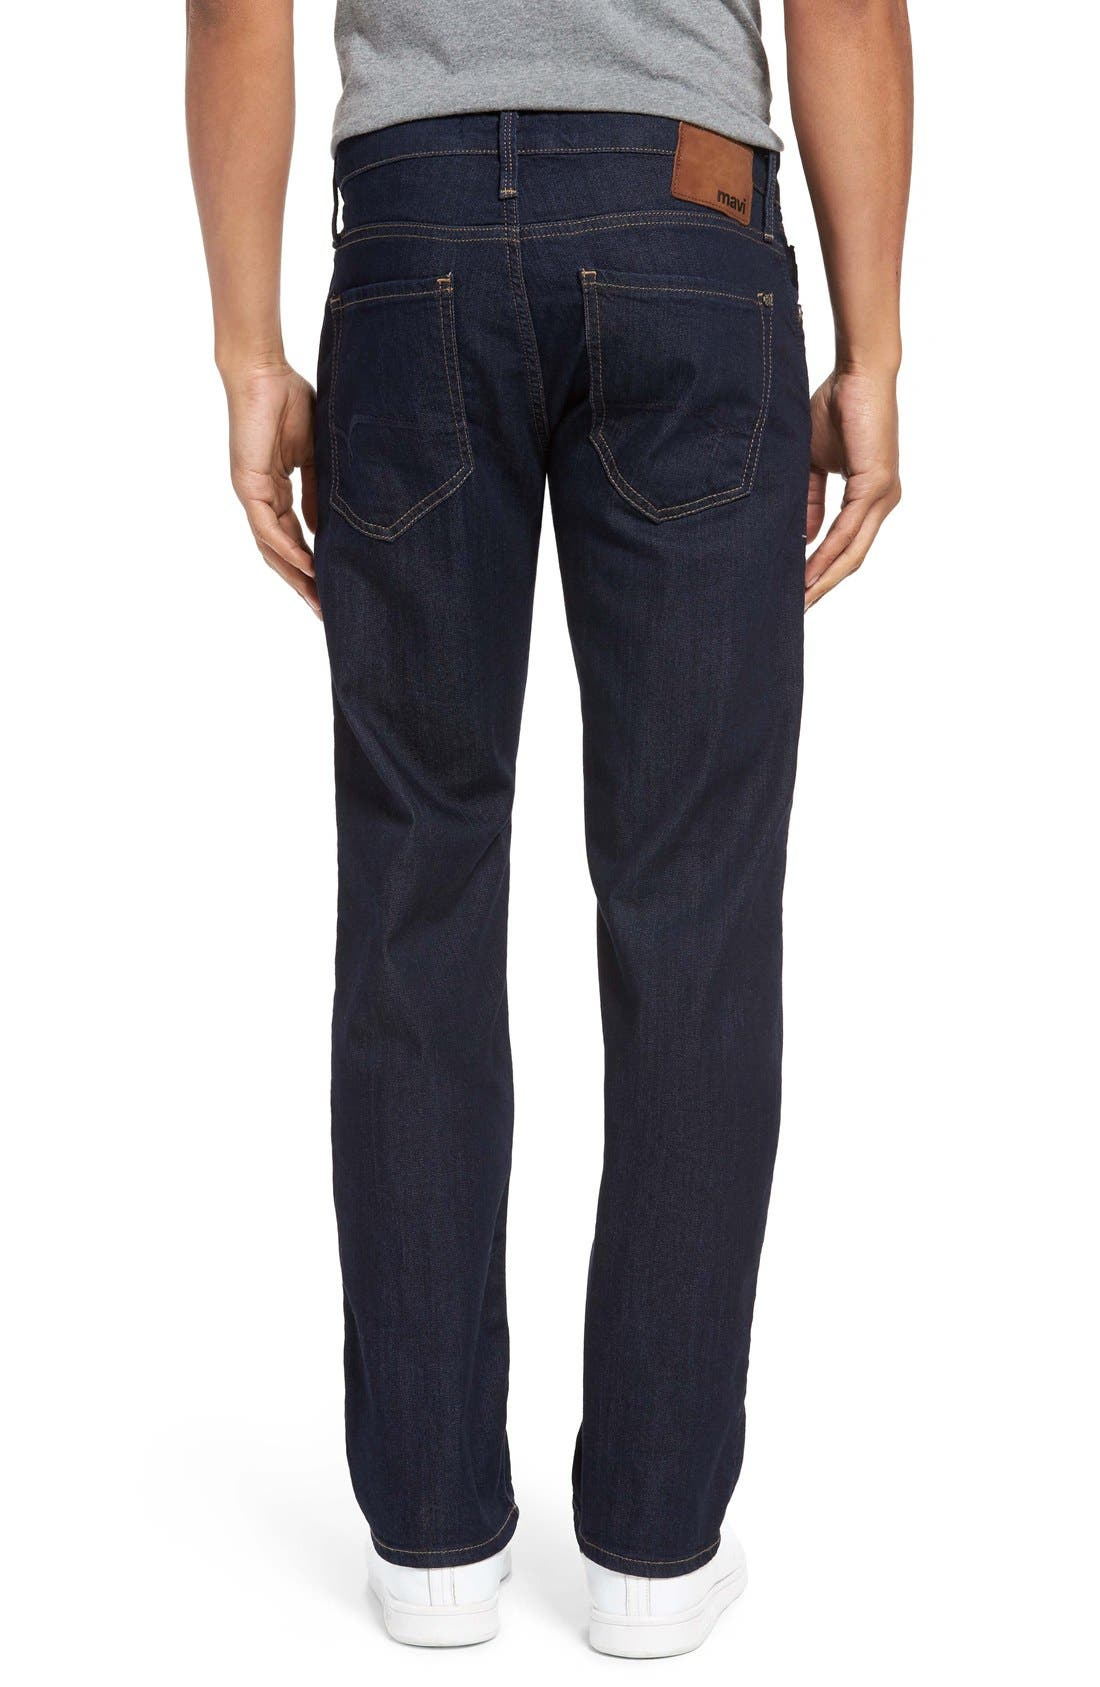 'Zach' Straight Leg Jeans,                             Alternate thumbnail 3, color,                             RINSE PORTLAND